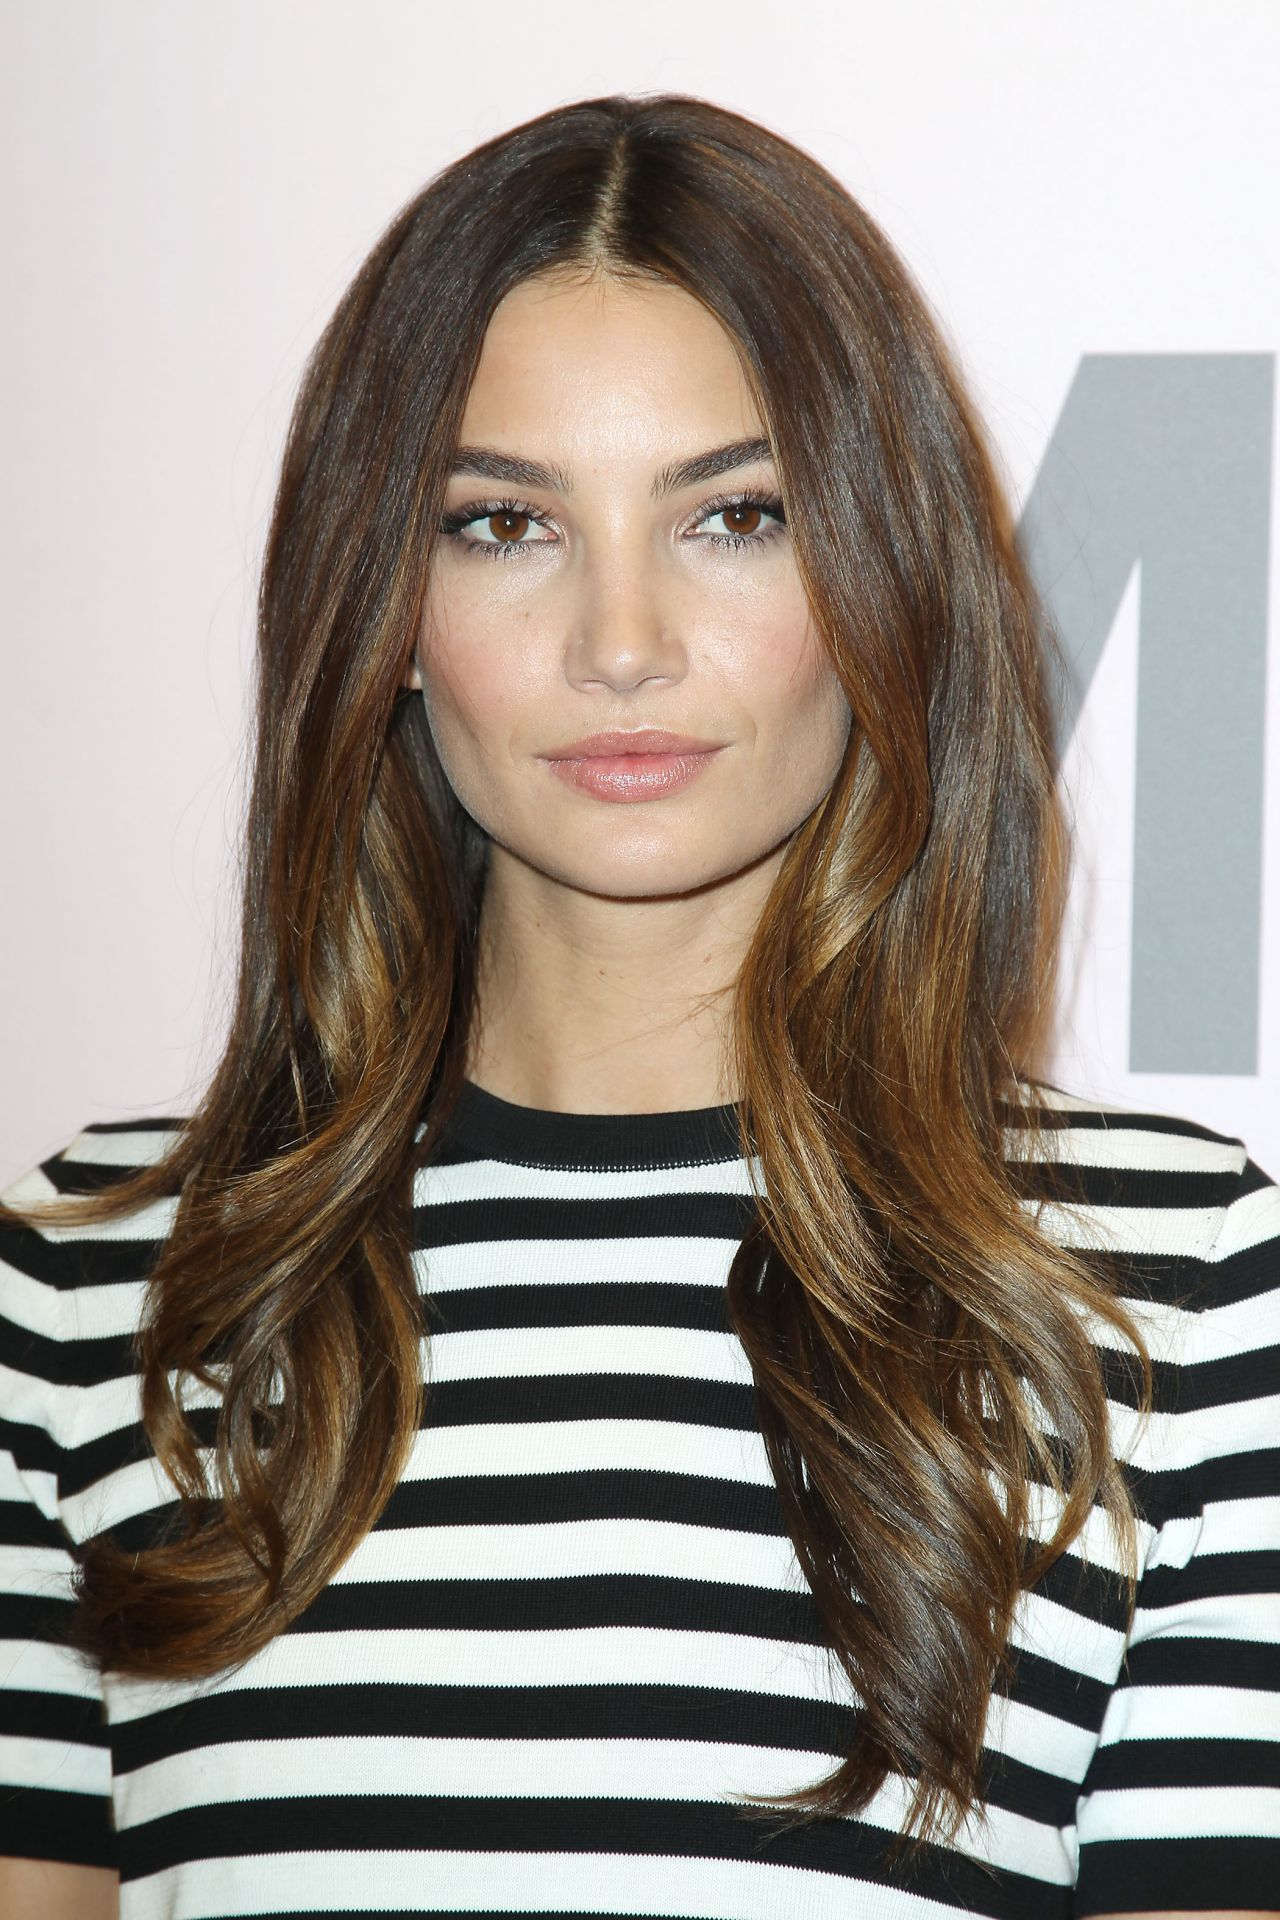 Lily Aldridge - Michael Kors New Miranda Eyewear Collection Launch - New York, Feb. 2015